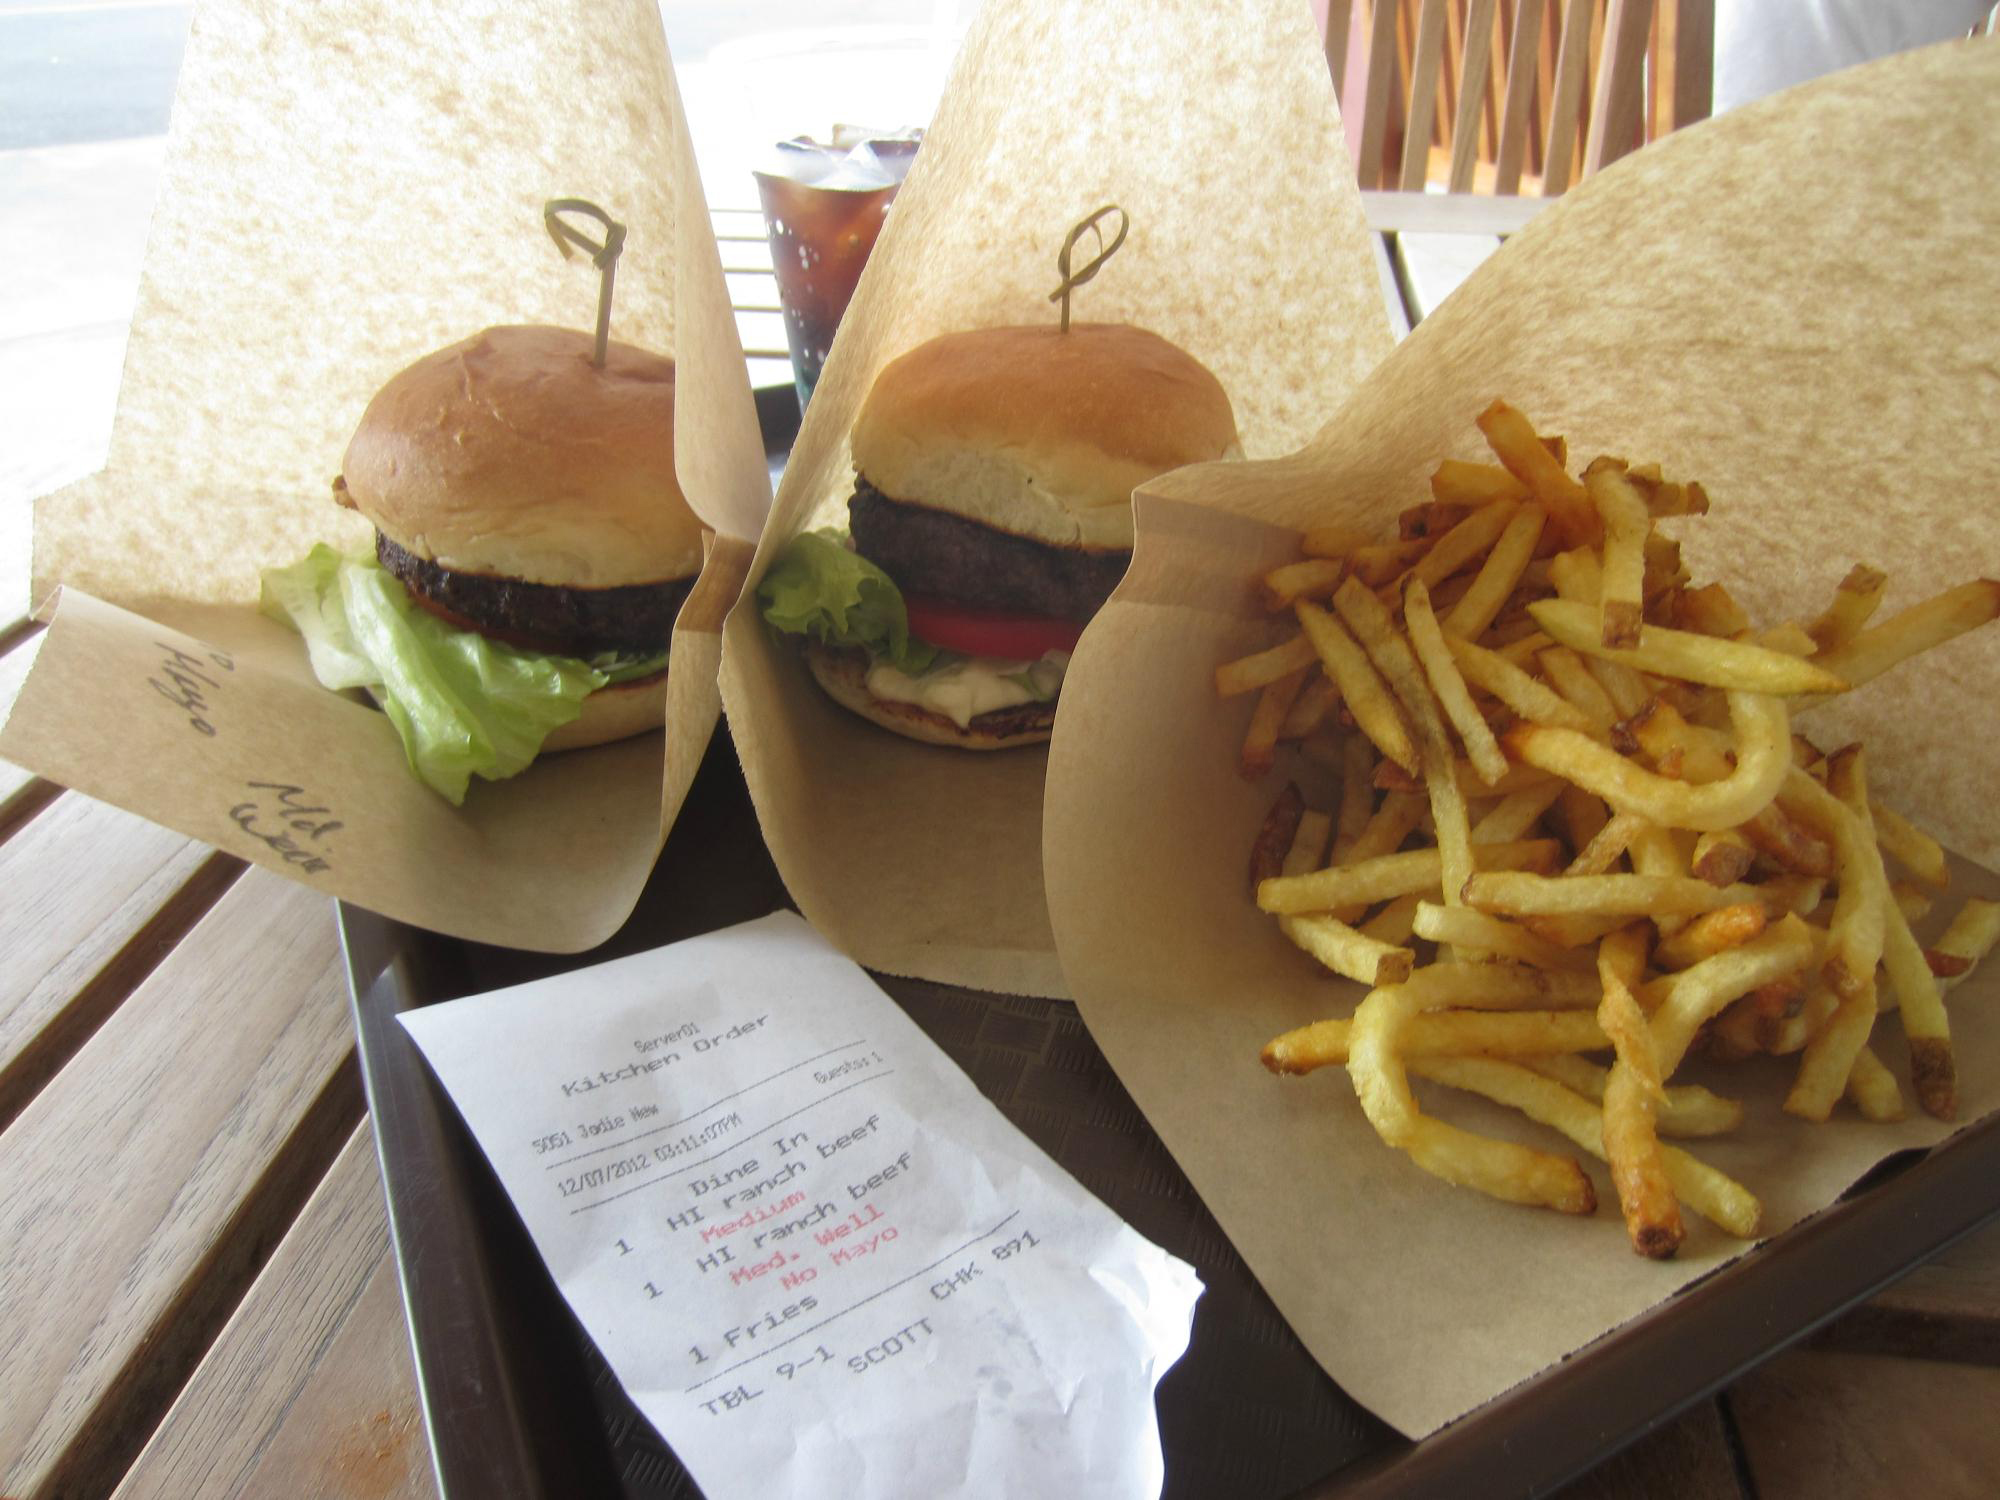 Hawaii's Village Burger in Waimea is among the top burger joints in the U.S., according to TripAdvisor reviewers (A TripAdvisor traveler photo)